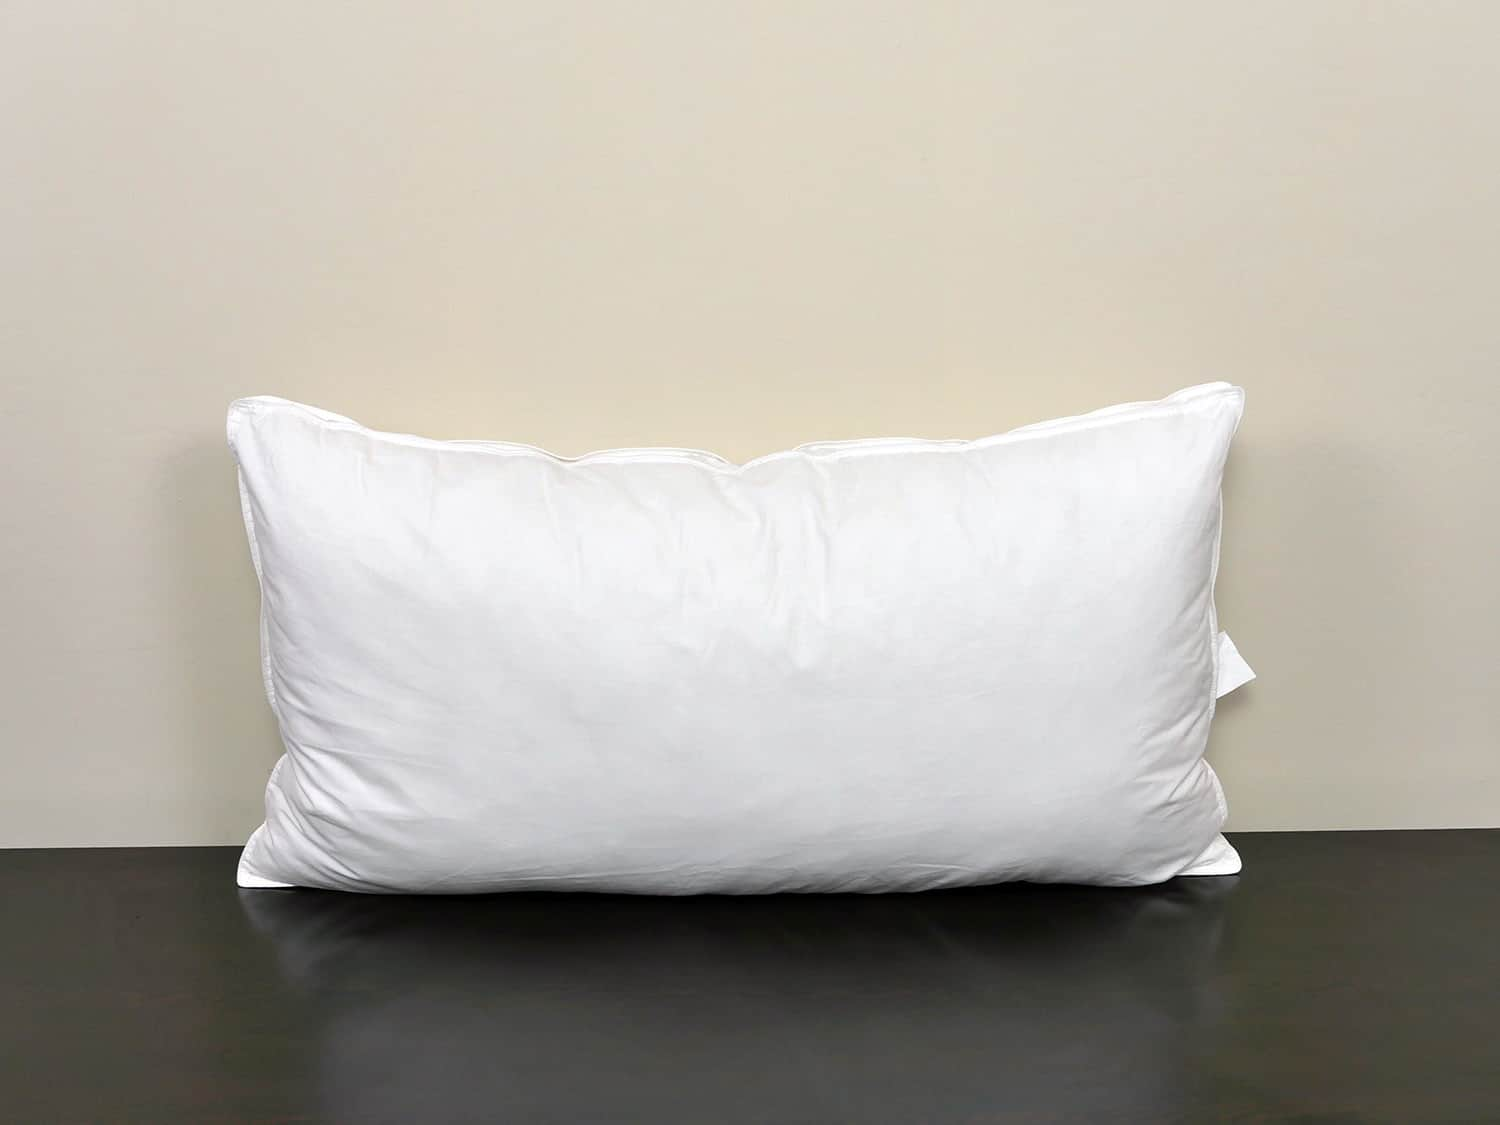 Eluxurysupply Revoloft Pillow Review Sleepopolis